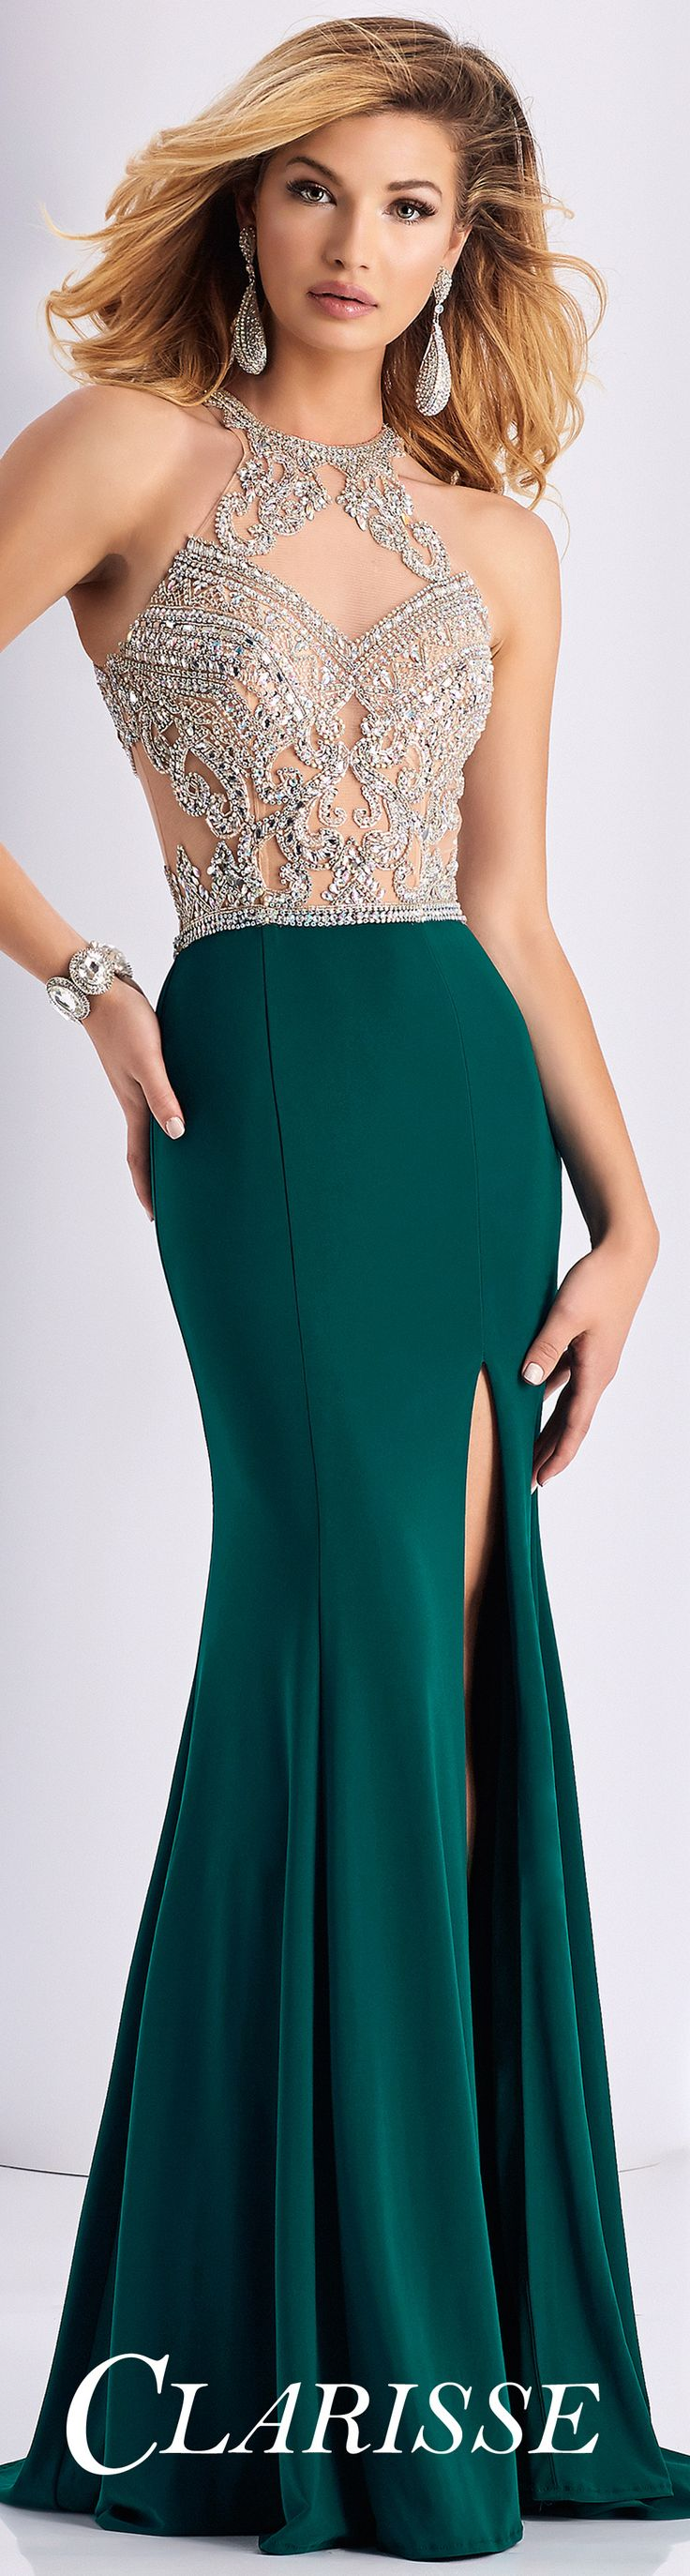 1000  ideas about Gorgeous Prom Dresses on Pinterest - Ball ...